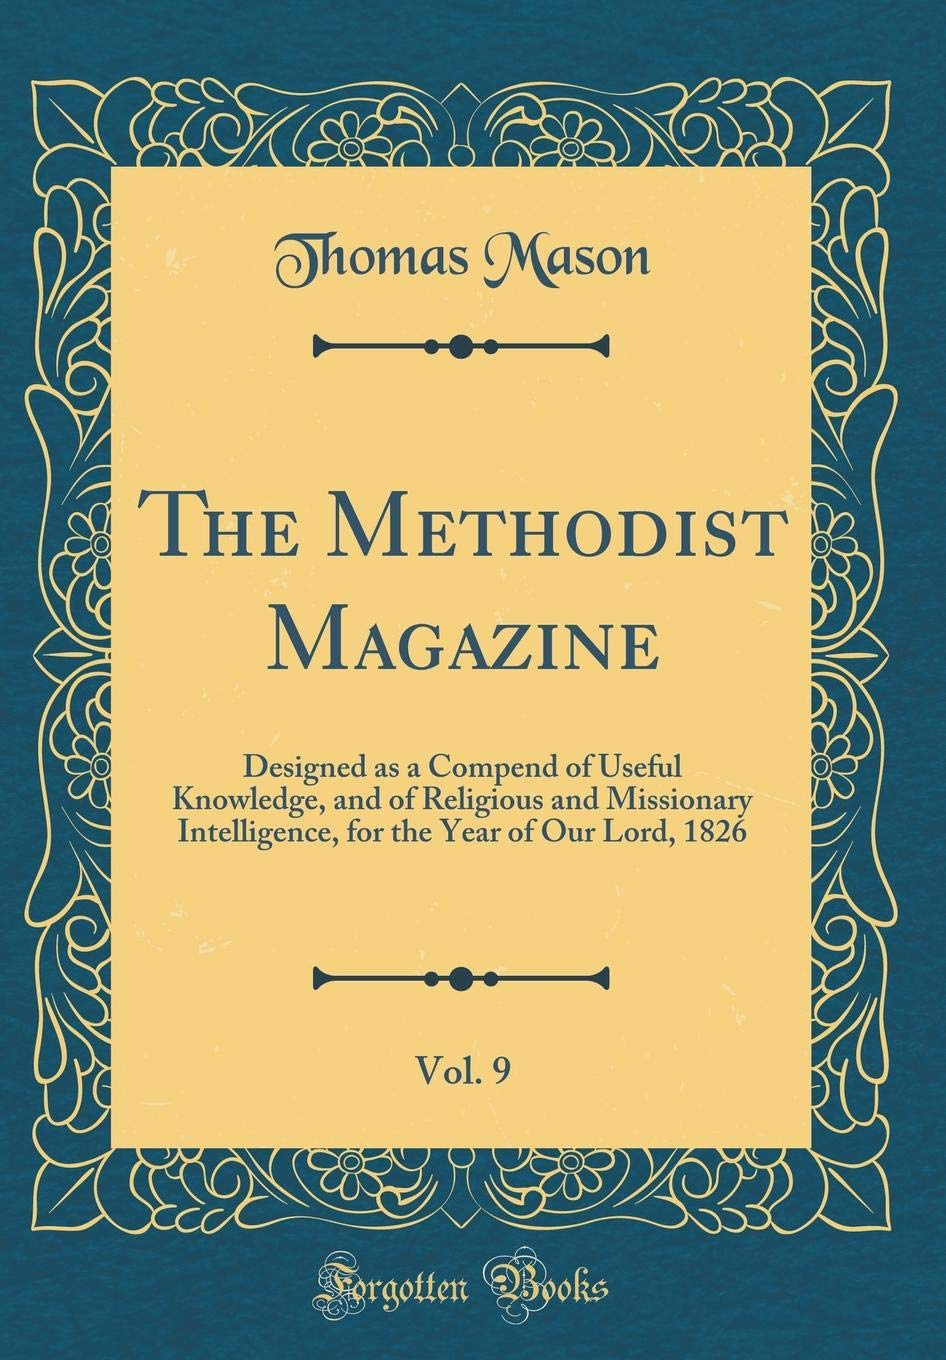 Download The Methodist Magazine, Vol. 9: Designed as a Compend of Useful Knowledge, and of Religious and Missionary Intelligence, for the Year of Our Lord, 1826 (Classic Reprint) pdf